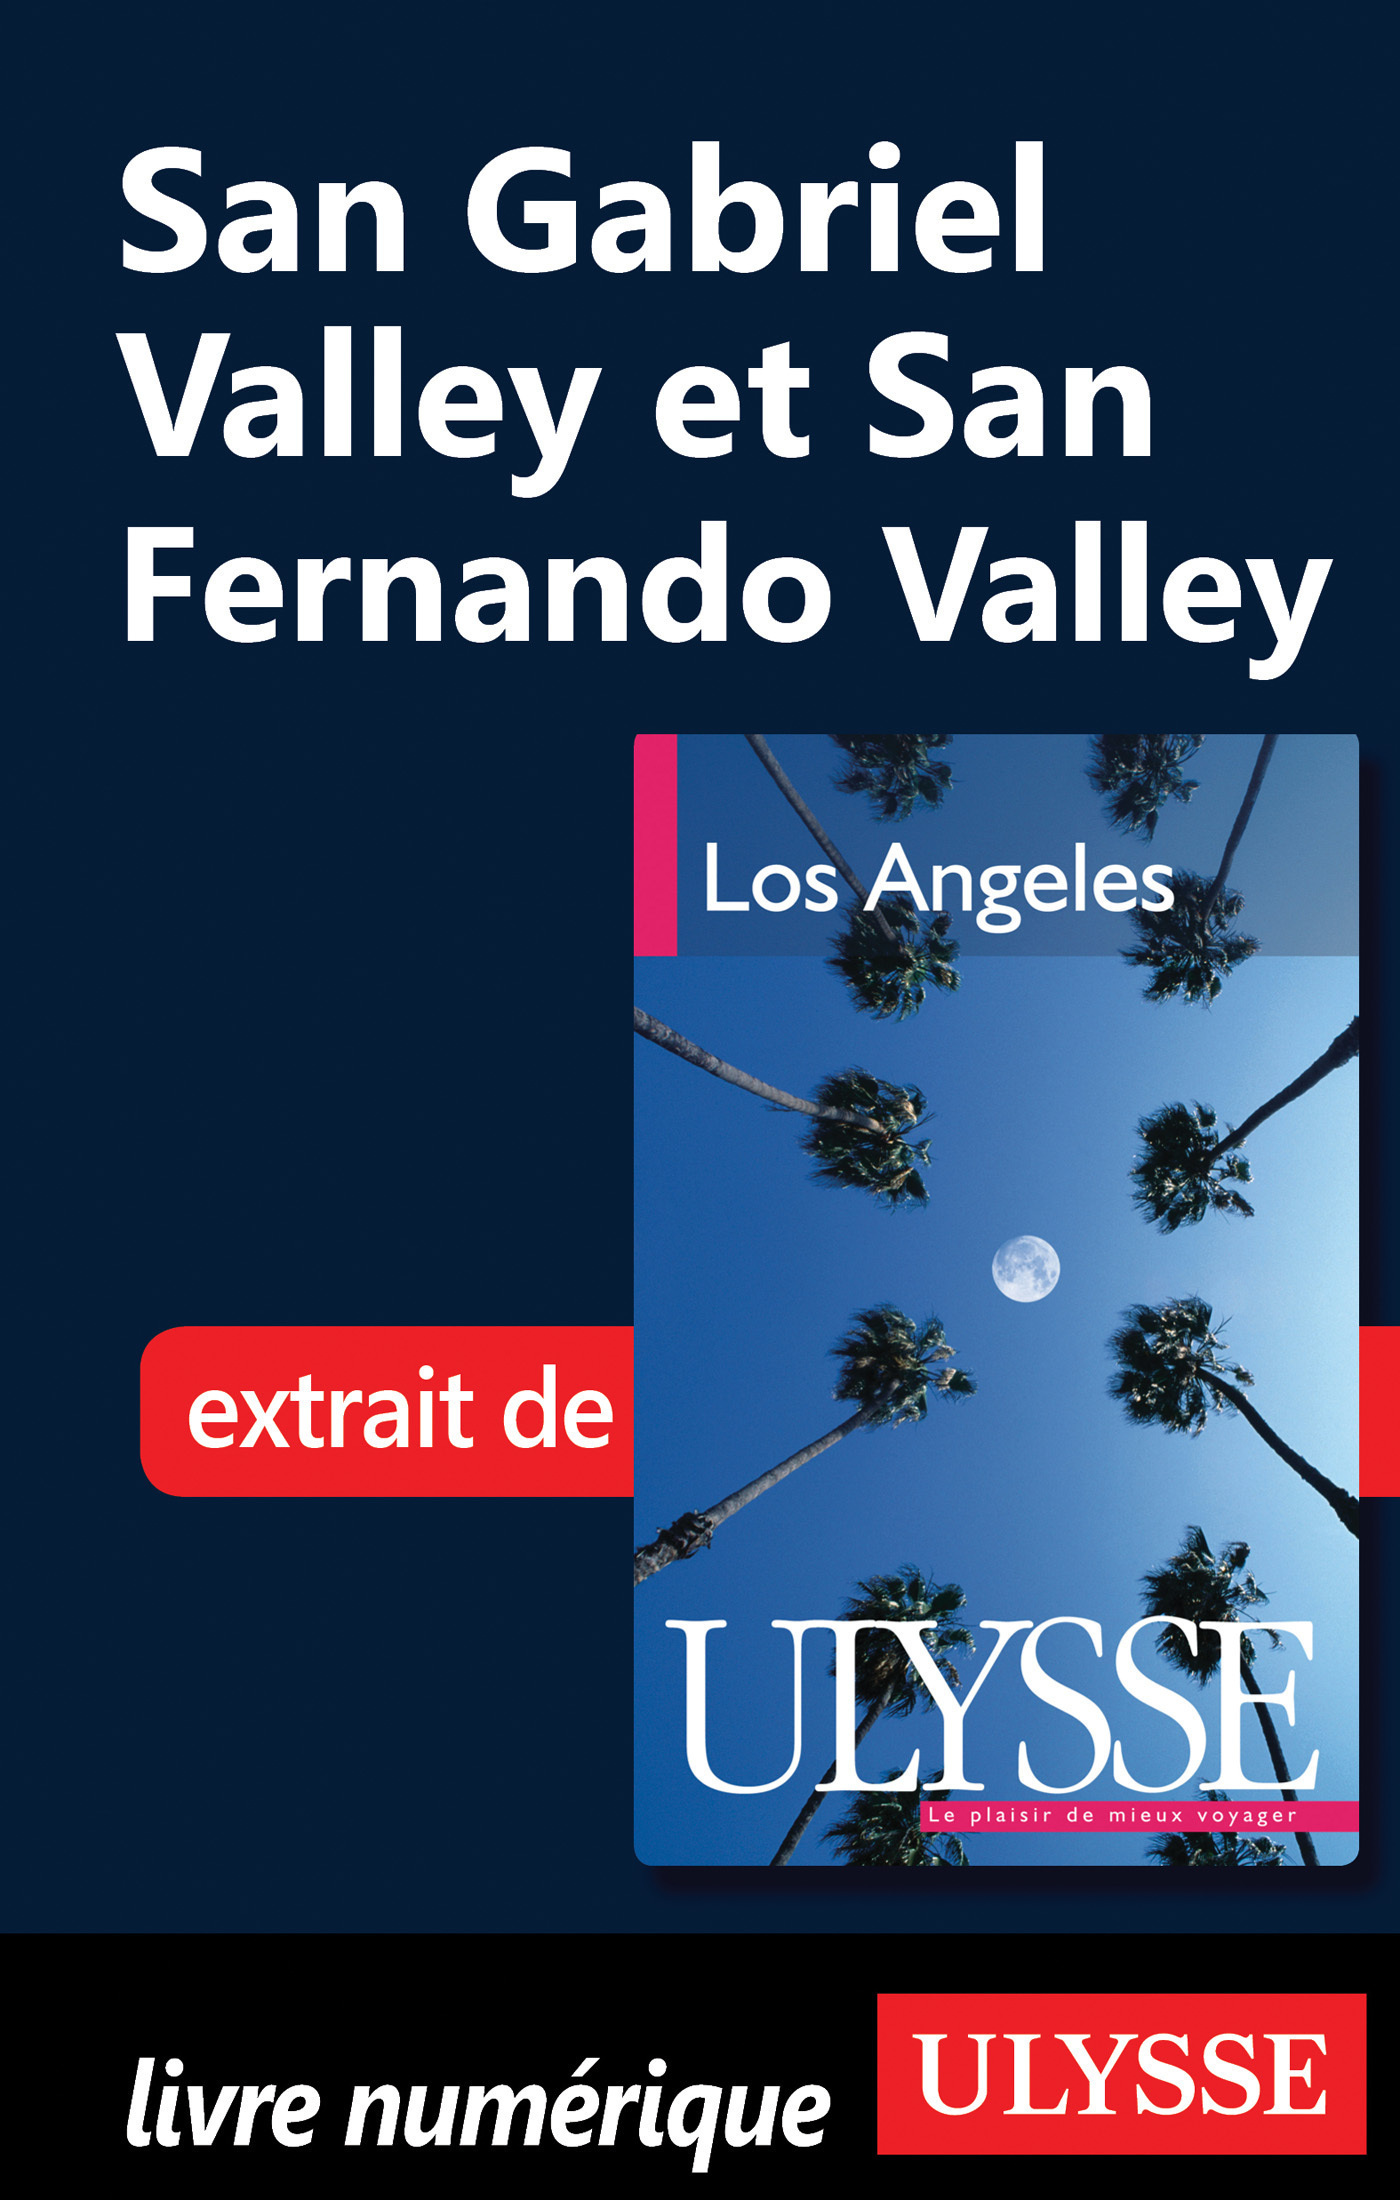 San Gabriel Valley et San Ferndo Valley